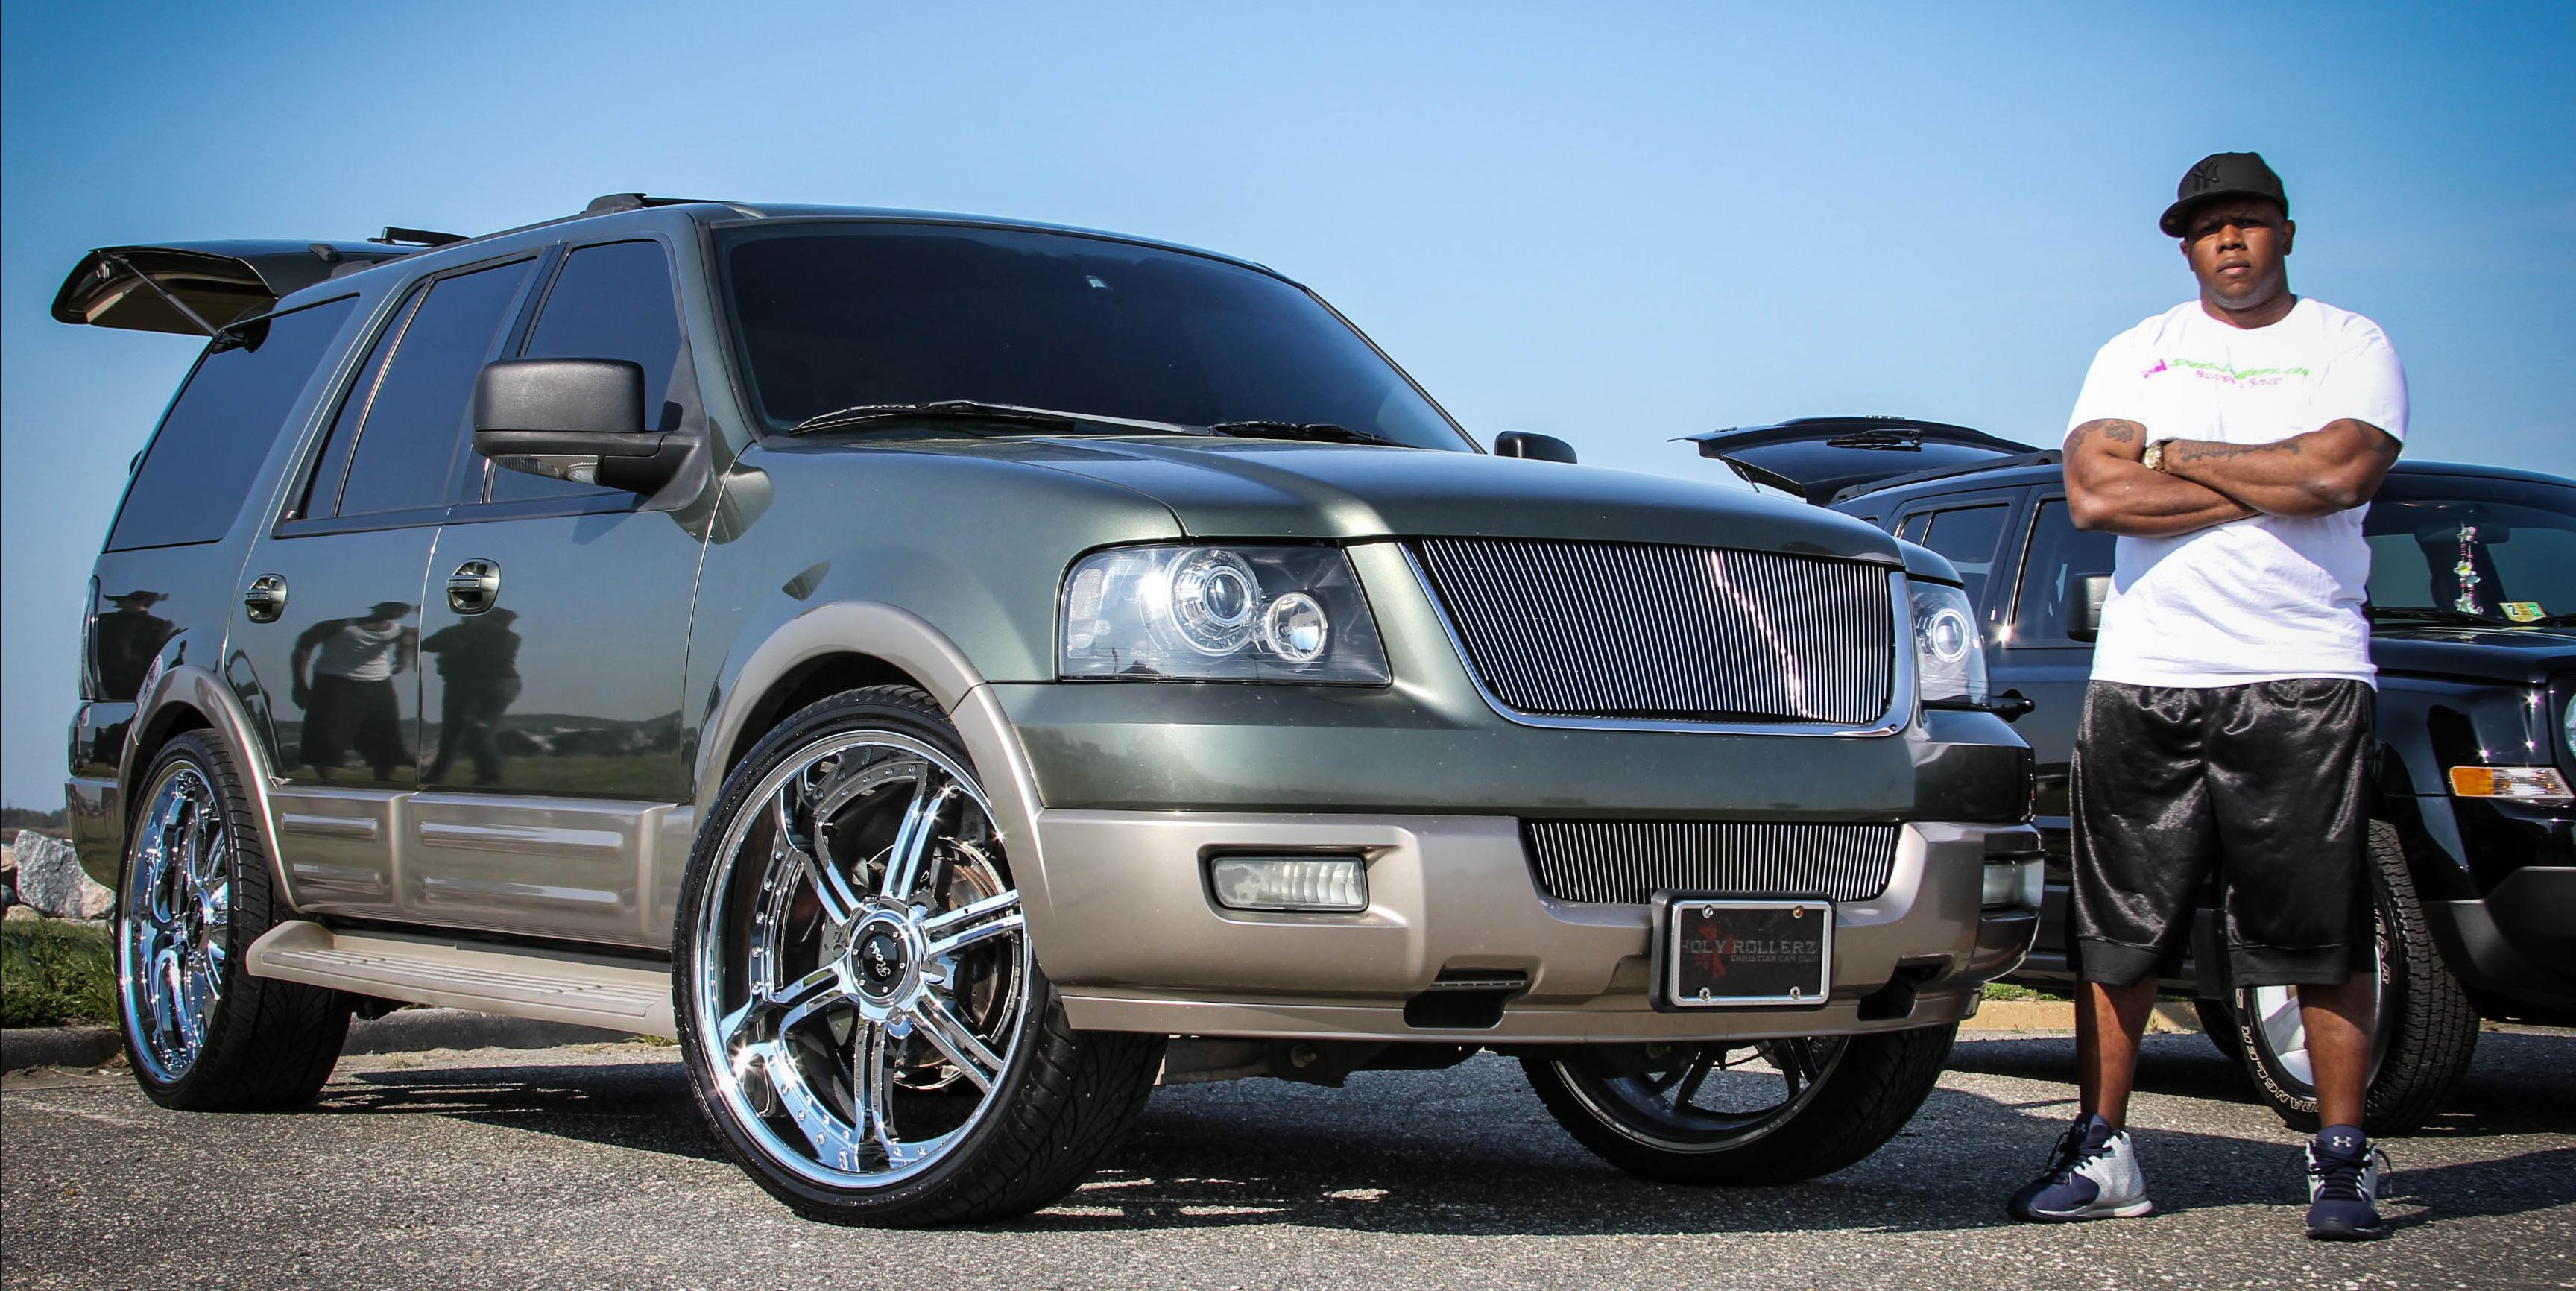 2004 Ford Expedition - View all 2004 Ford Expedition at CarDomain